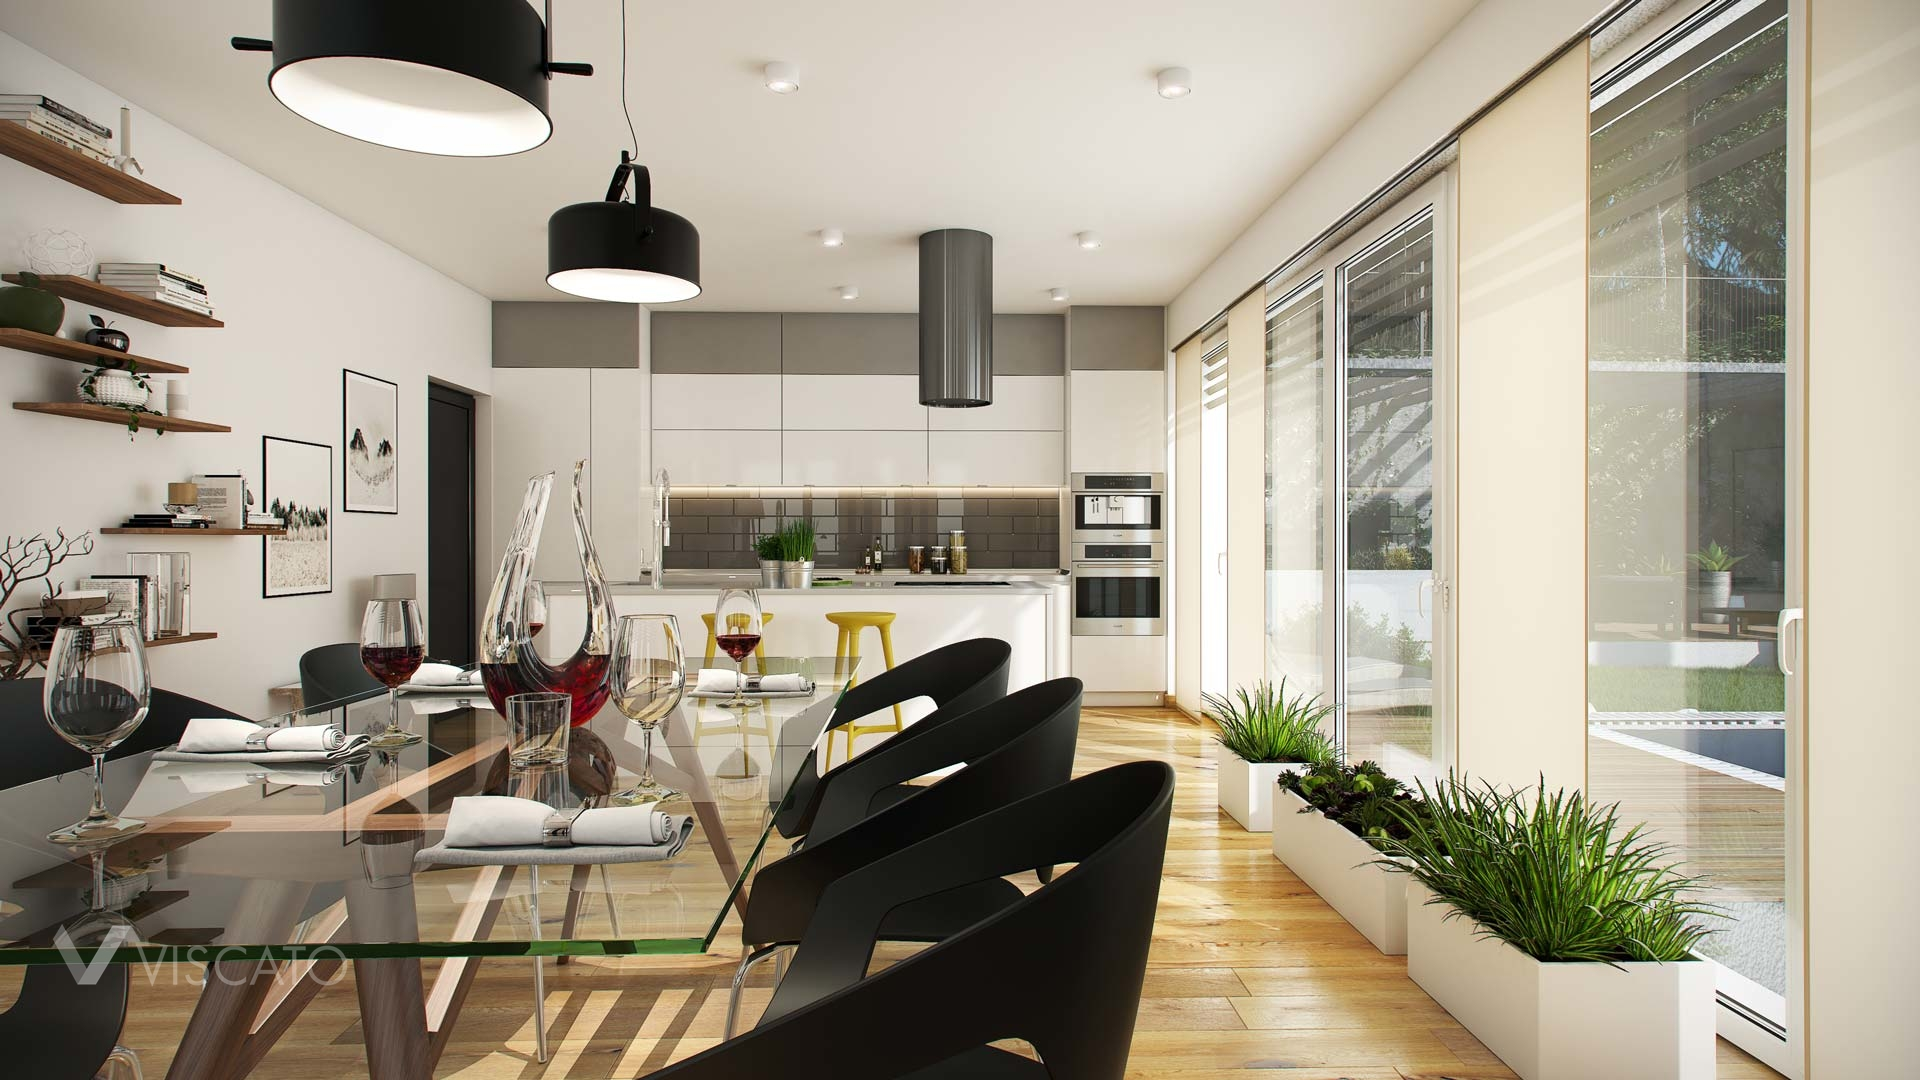 Interior Renderings of a bright room with details made of glass Viscato